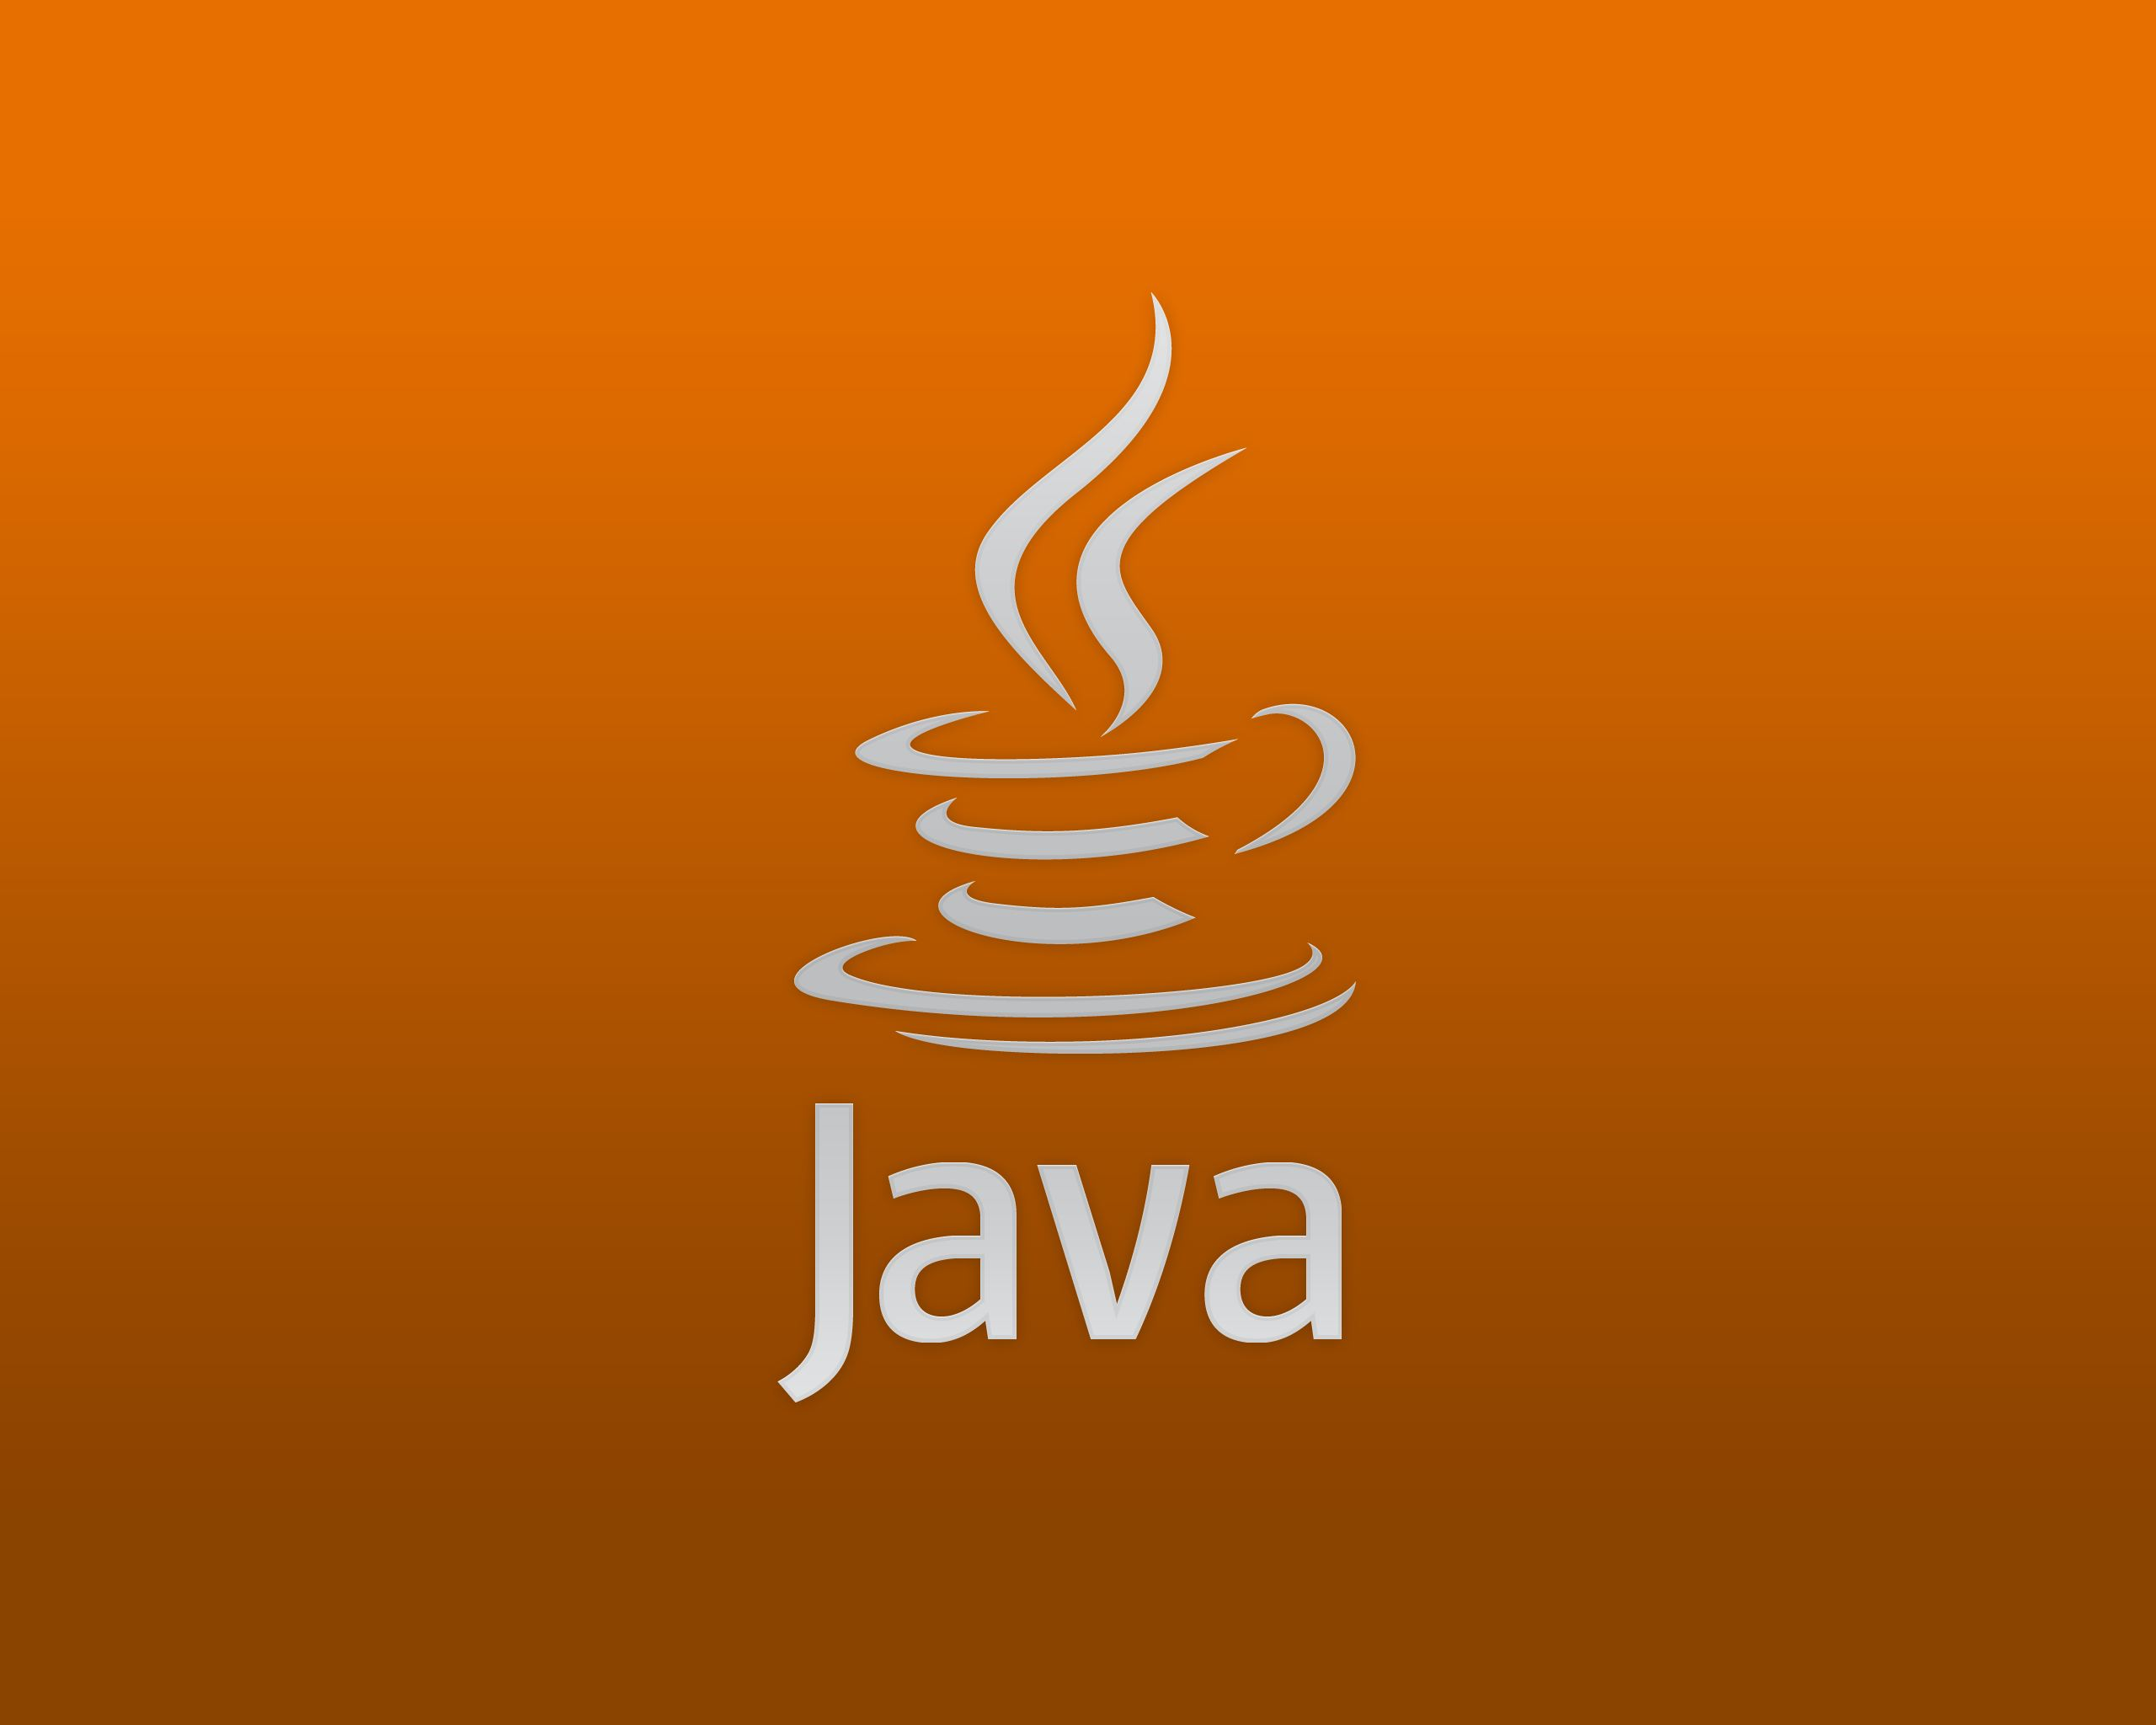 java logo – How to Learn